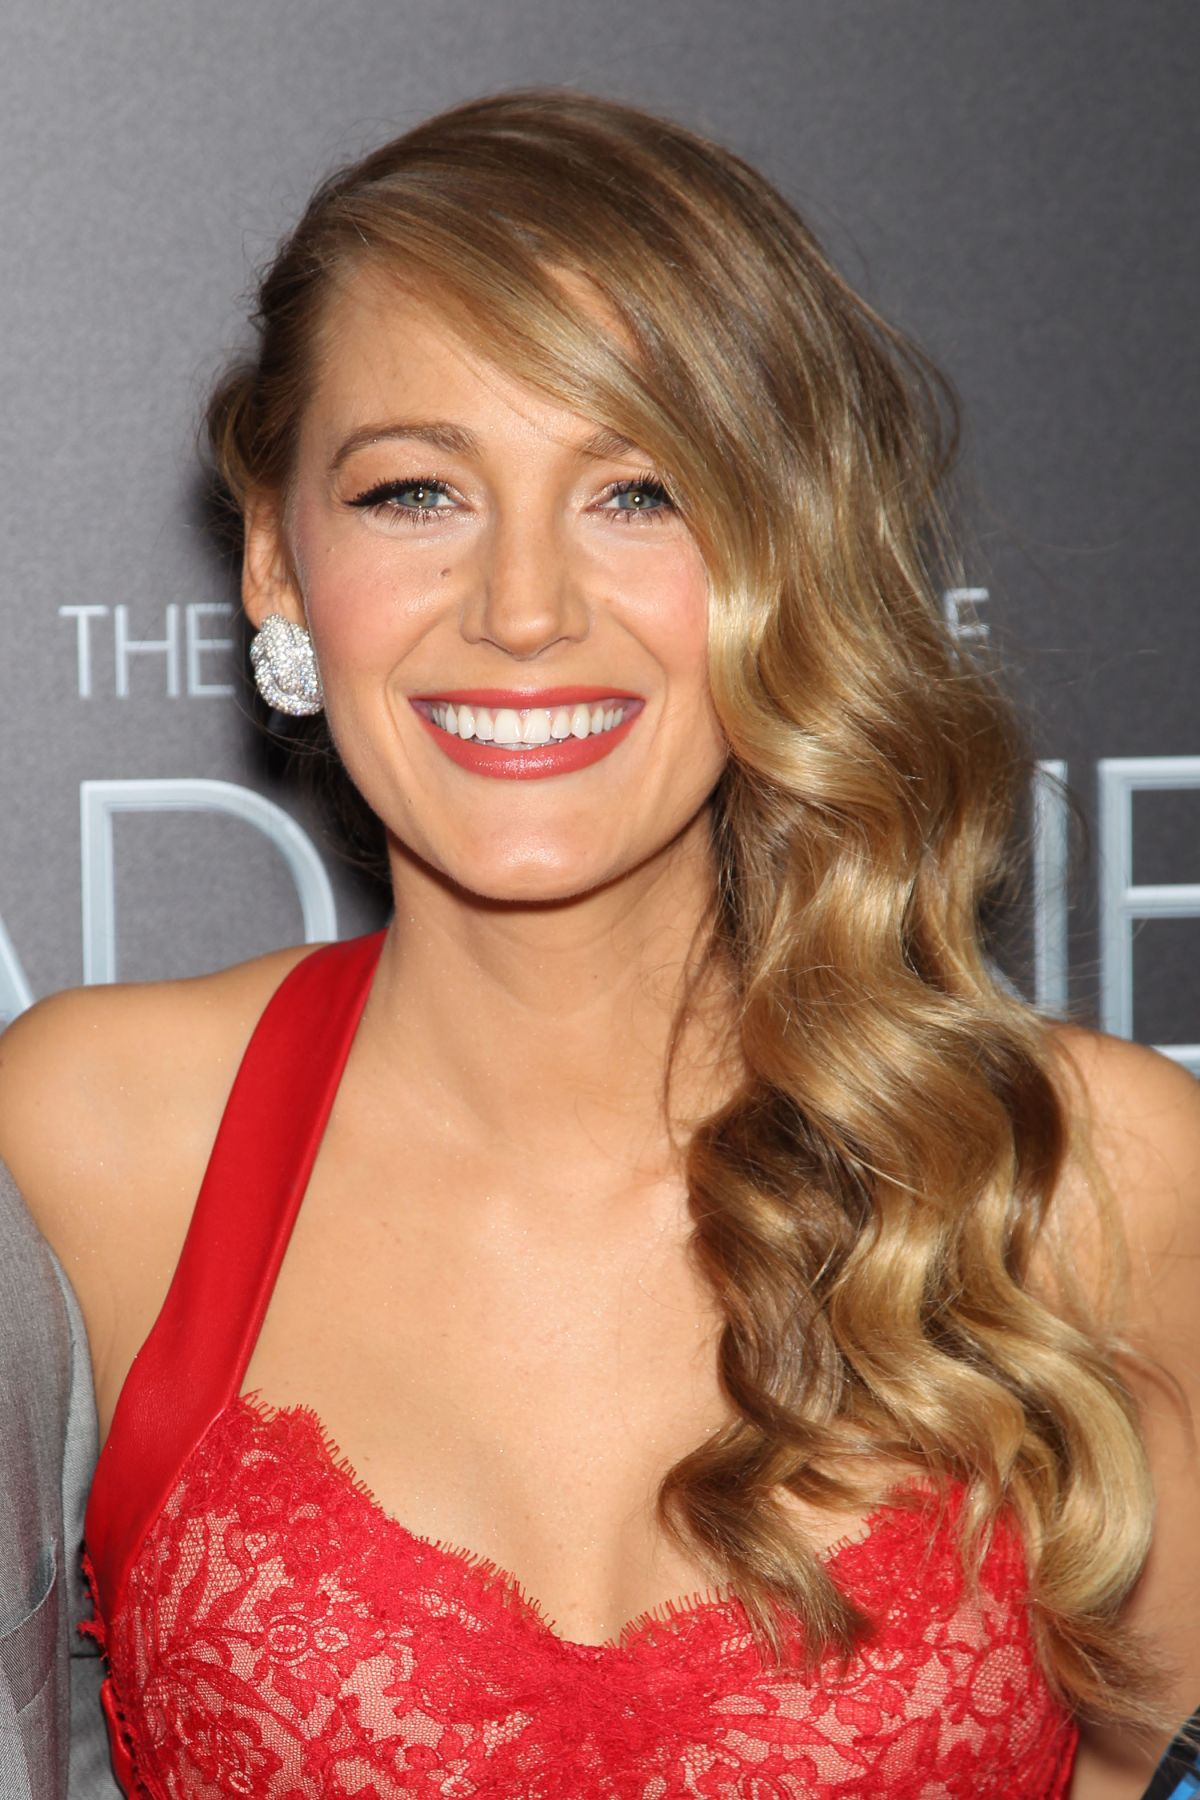 Blake Lively At The Age Of Adaline Premiere - Celebzz